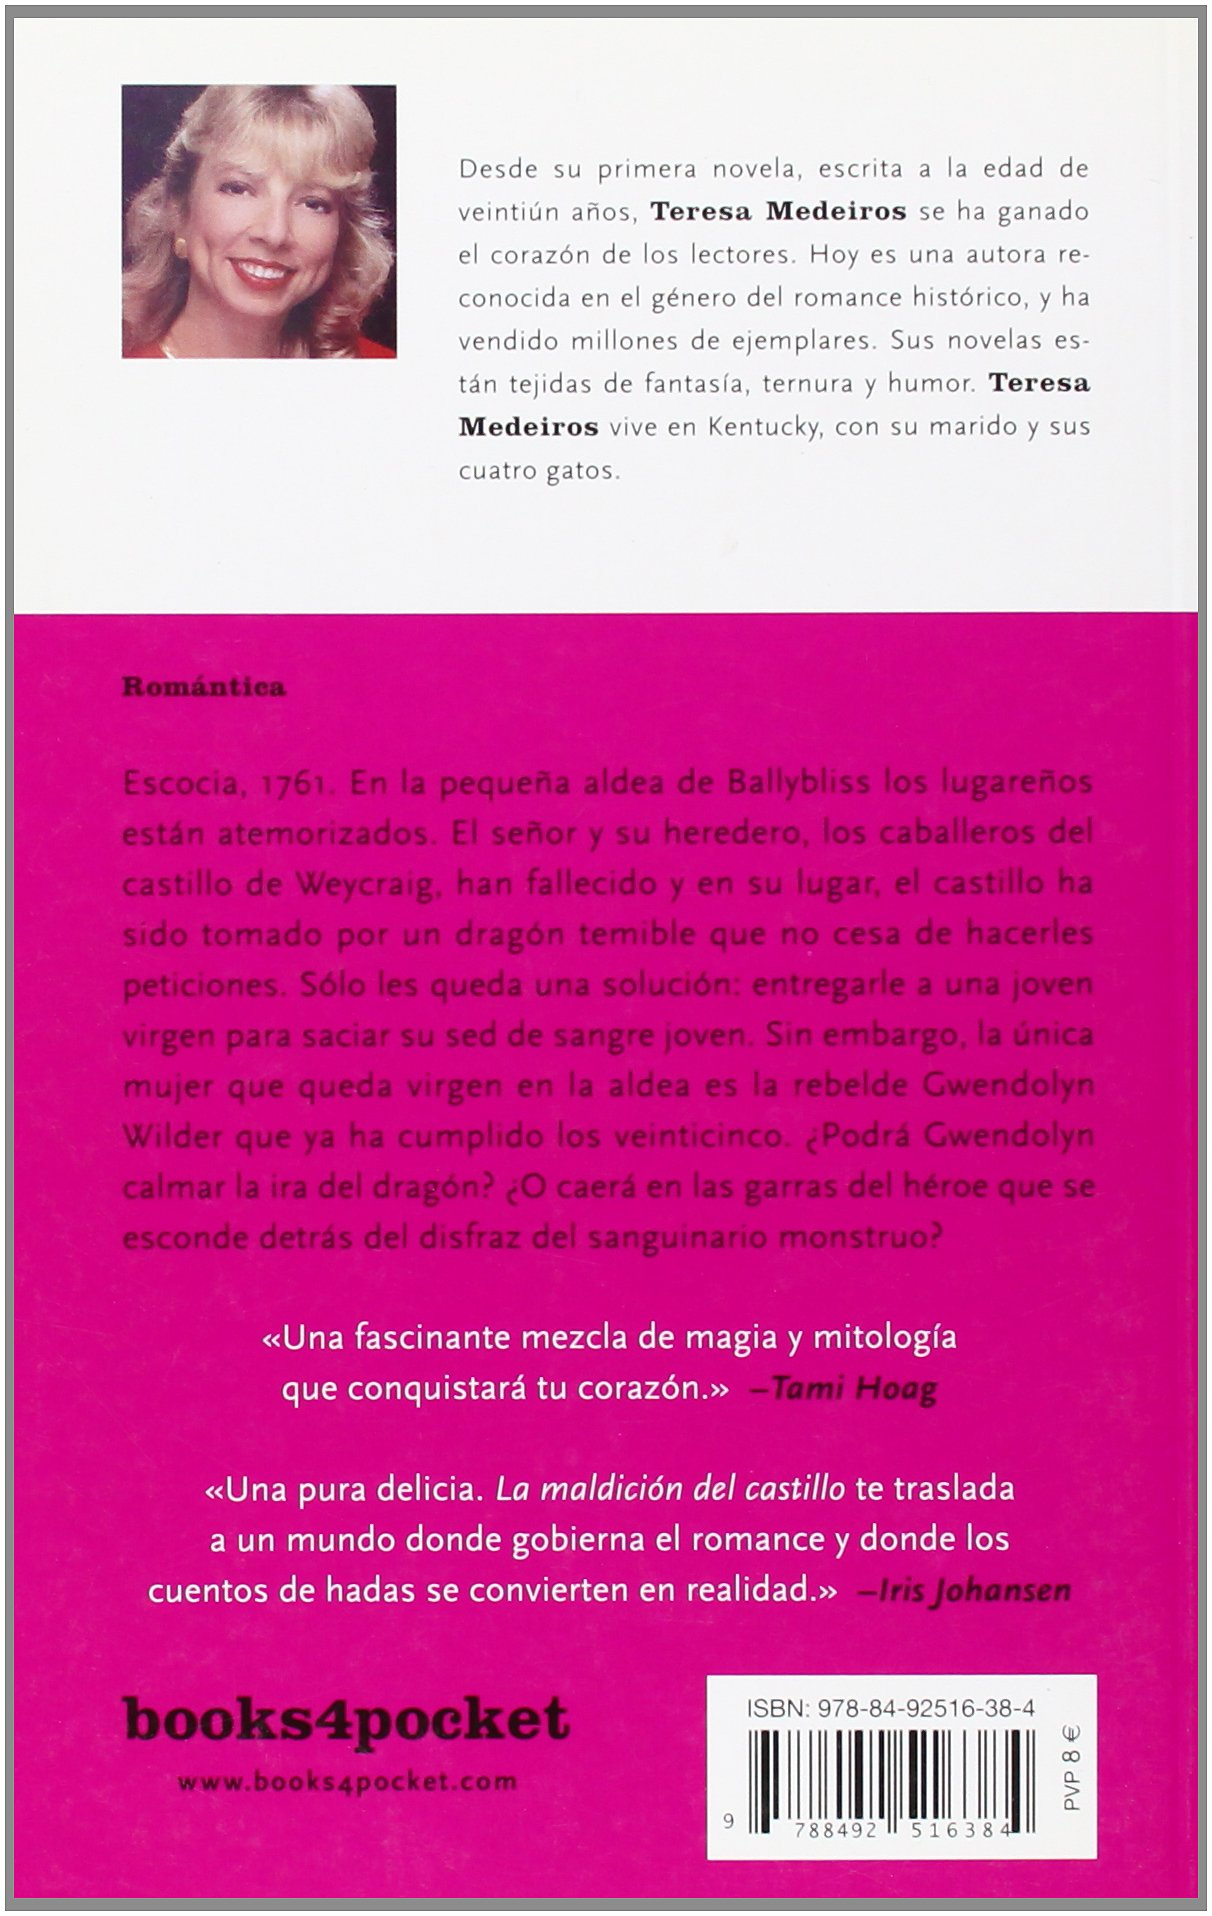 La maldicion del castillo (Books4pocket Romantica) (Spanish Edition): Medeiros, Teresa: 9788492516384: Amazon.com: Books